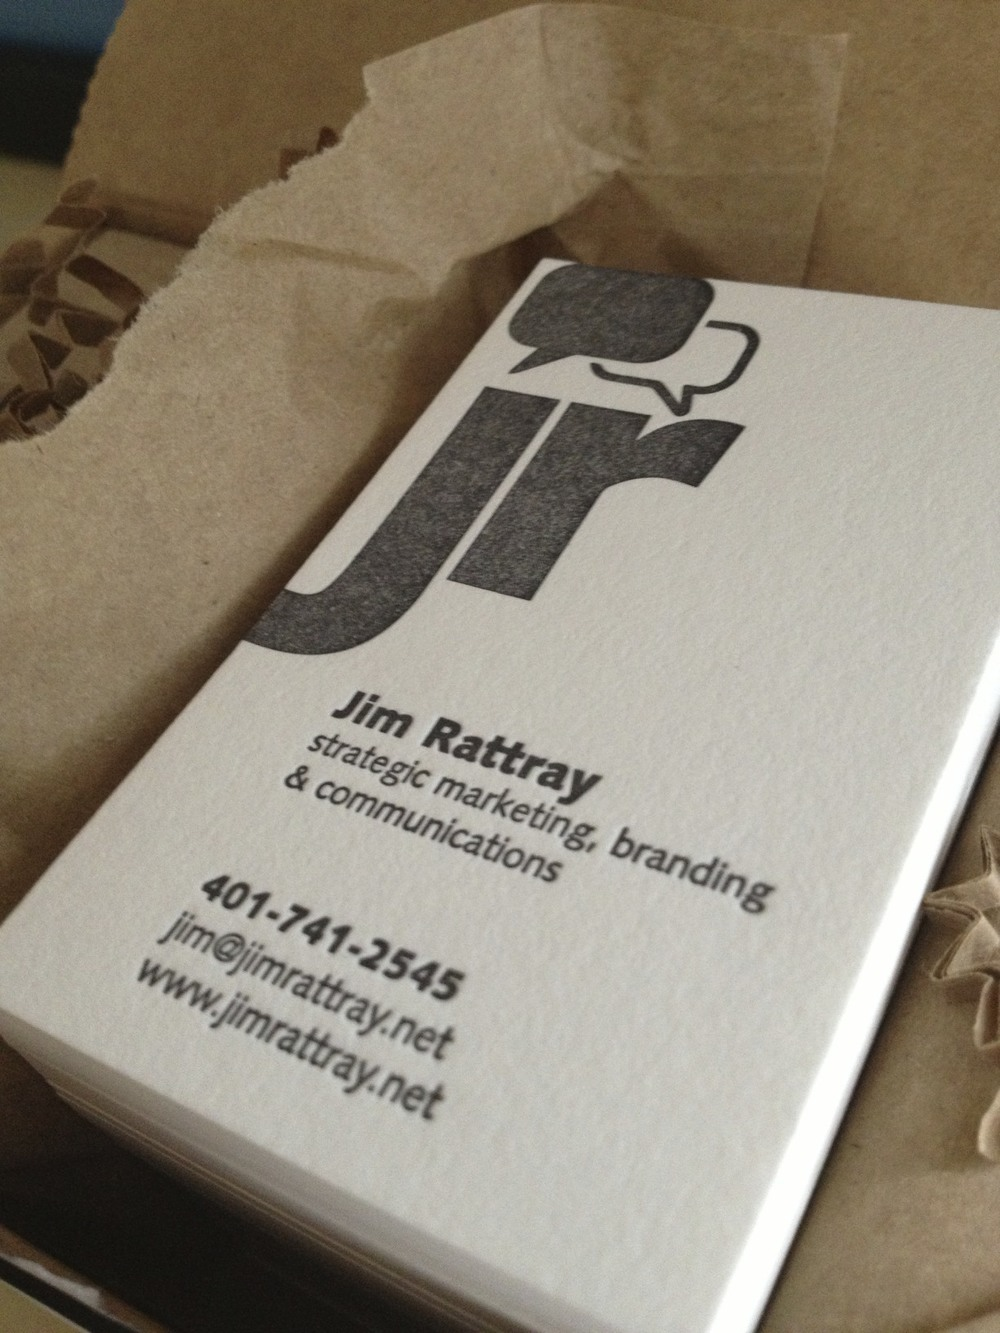 2014-0123-JR biz cards.jpg